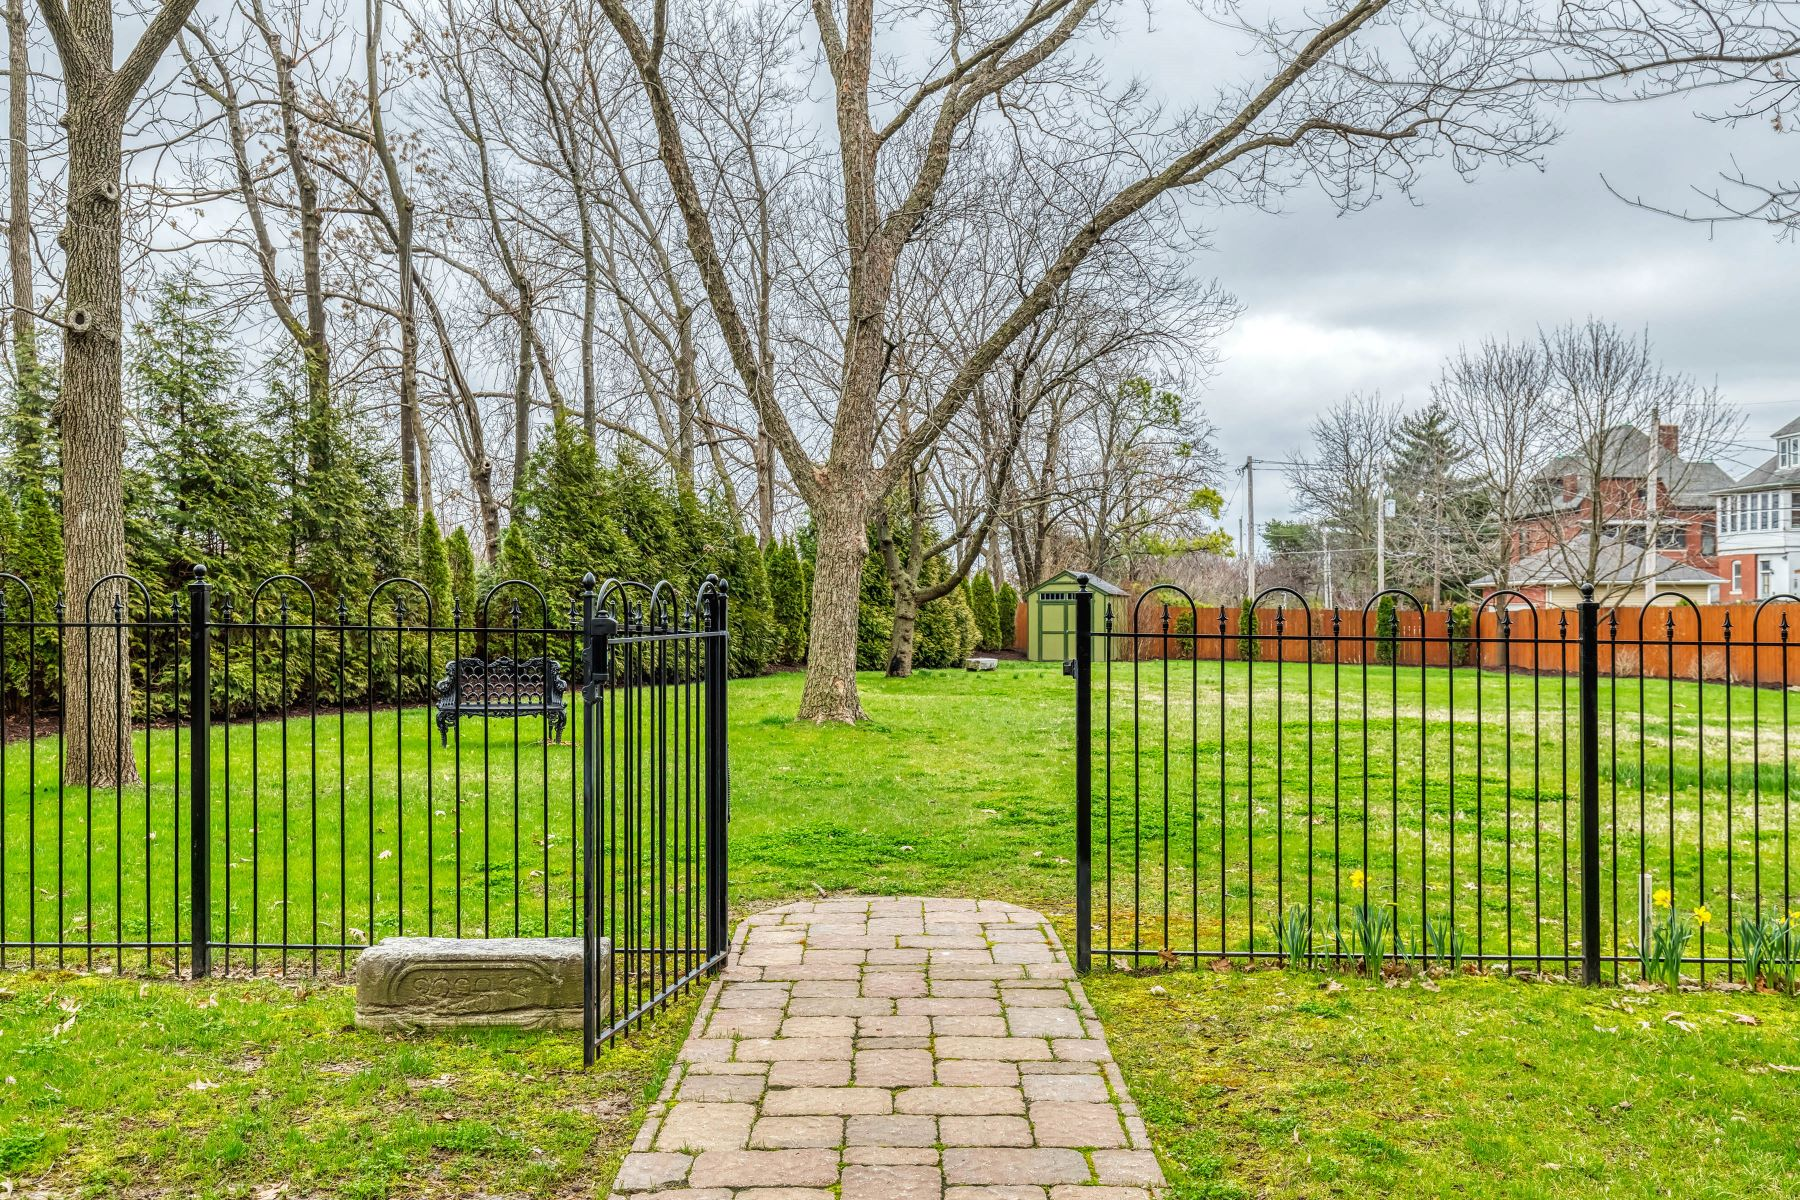 Land for Sale at Fenced and Landscaped Lot 3228 Copelin Avenue St. Louis, Missouri 63104 United States